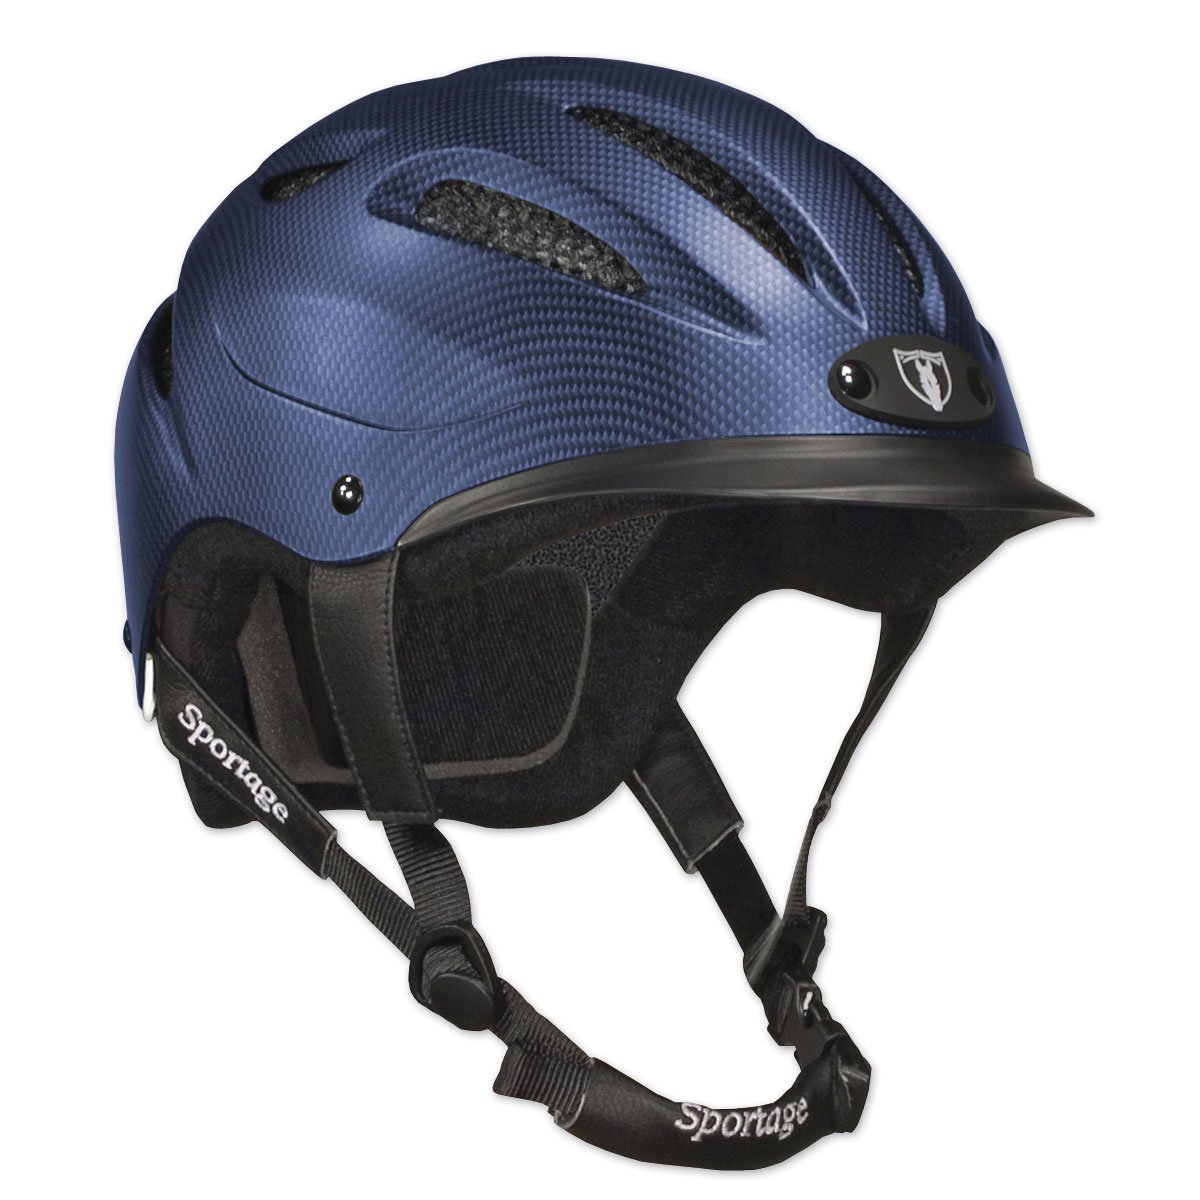 TIPPERARY EQUESTRIAN Sportage Equestrian-Helmets, Large, Navy Blue